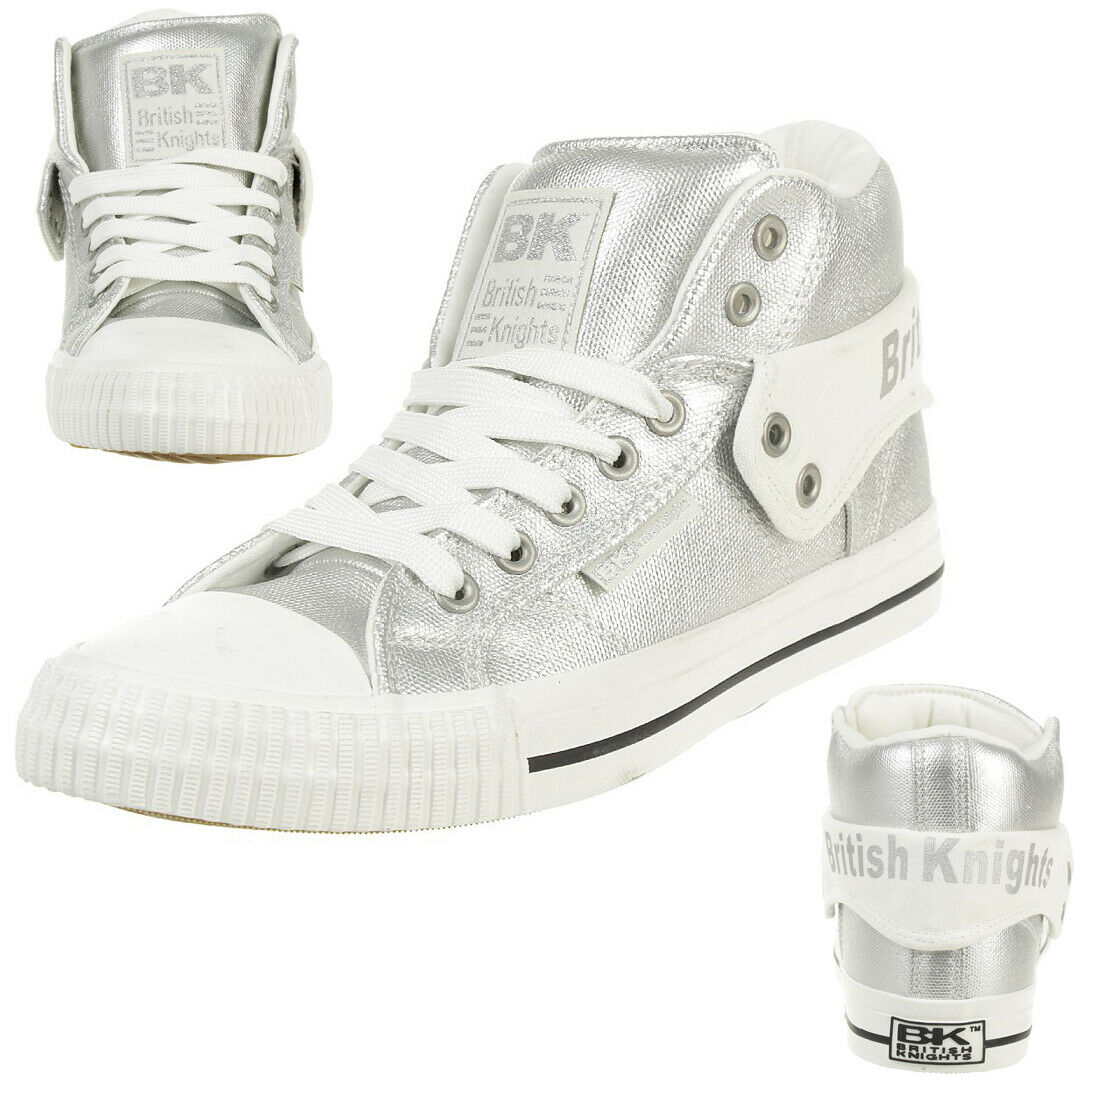 British Knights Roco Metallic Bk Women's Sneakers B43-3706-01 Silver Metallic